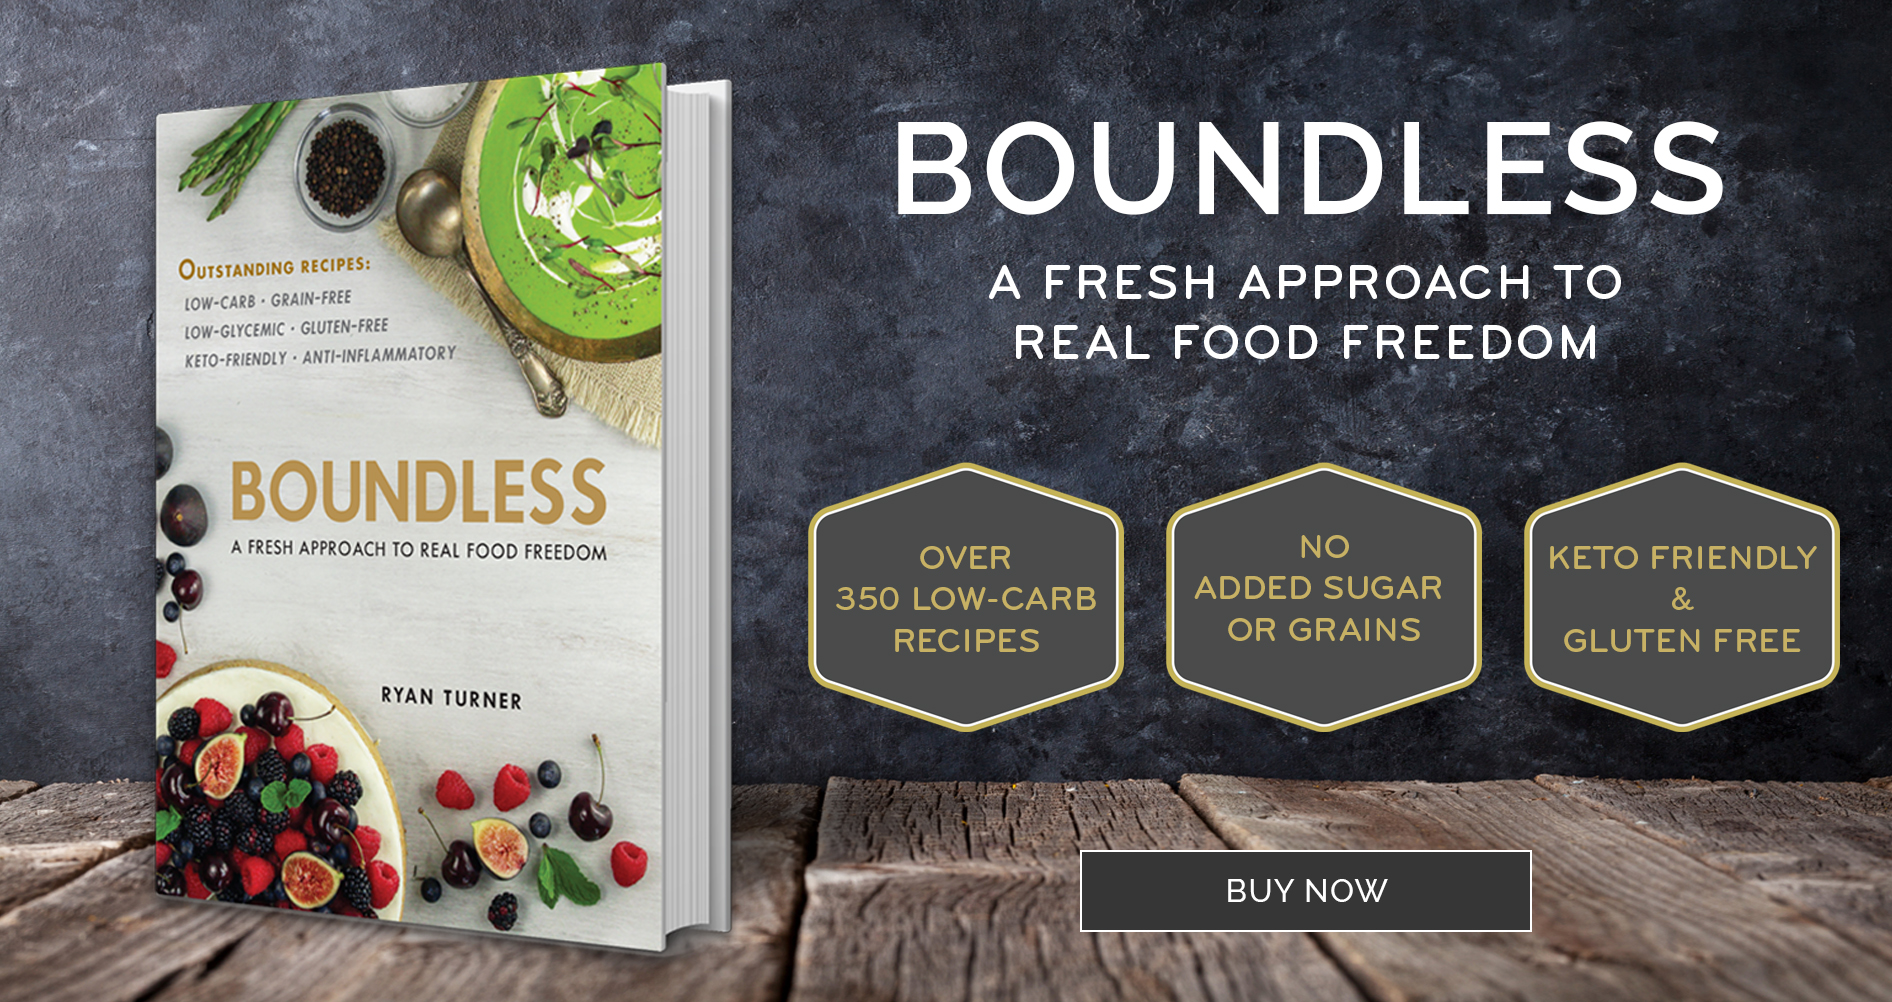 BEST LOW CARB COOKBOOK - BOUNDLESS BY CHEF RYAN TURNER.jpg